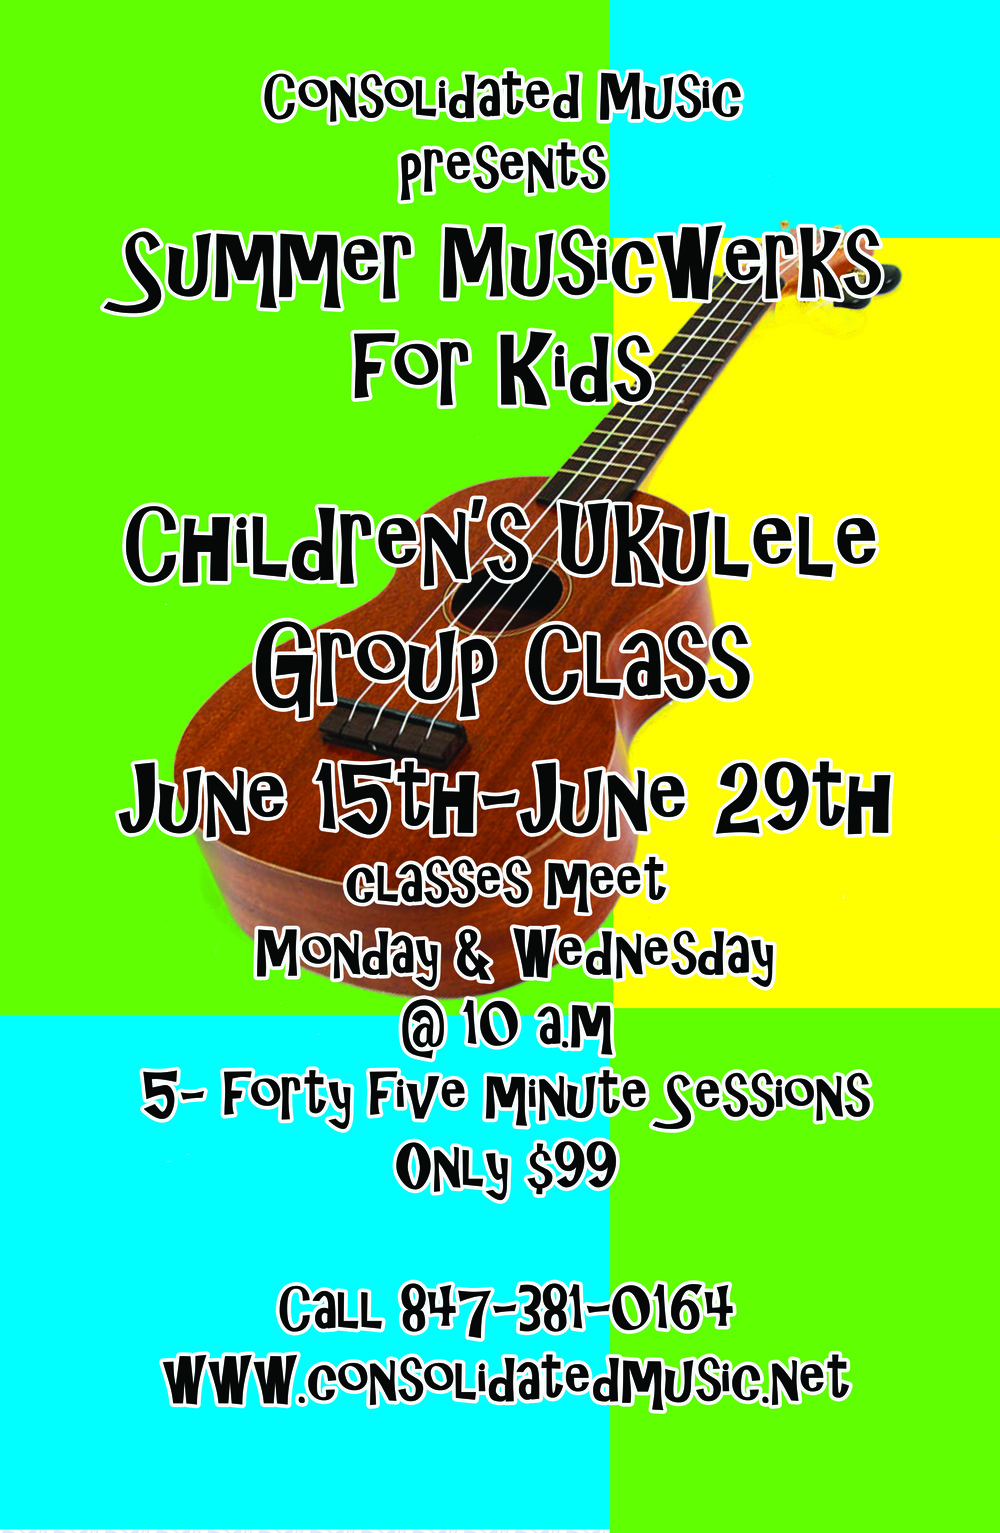 ChildrensUkeClass